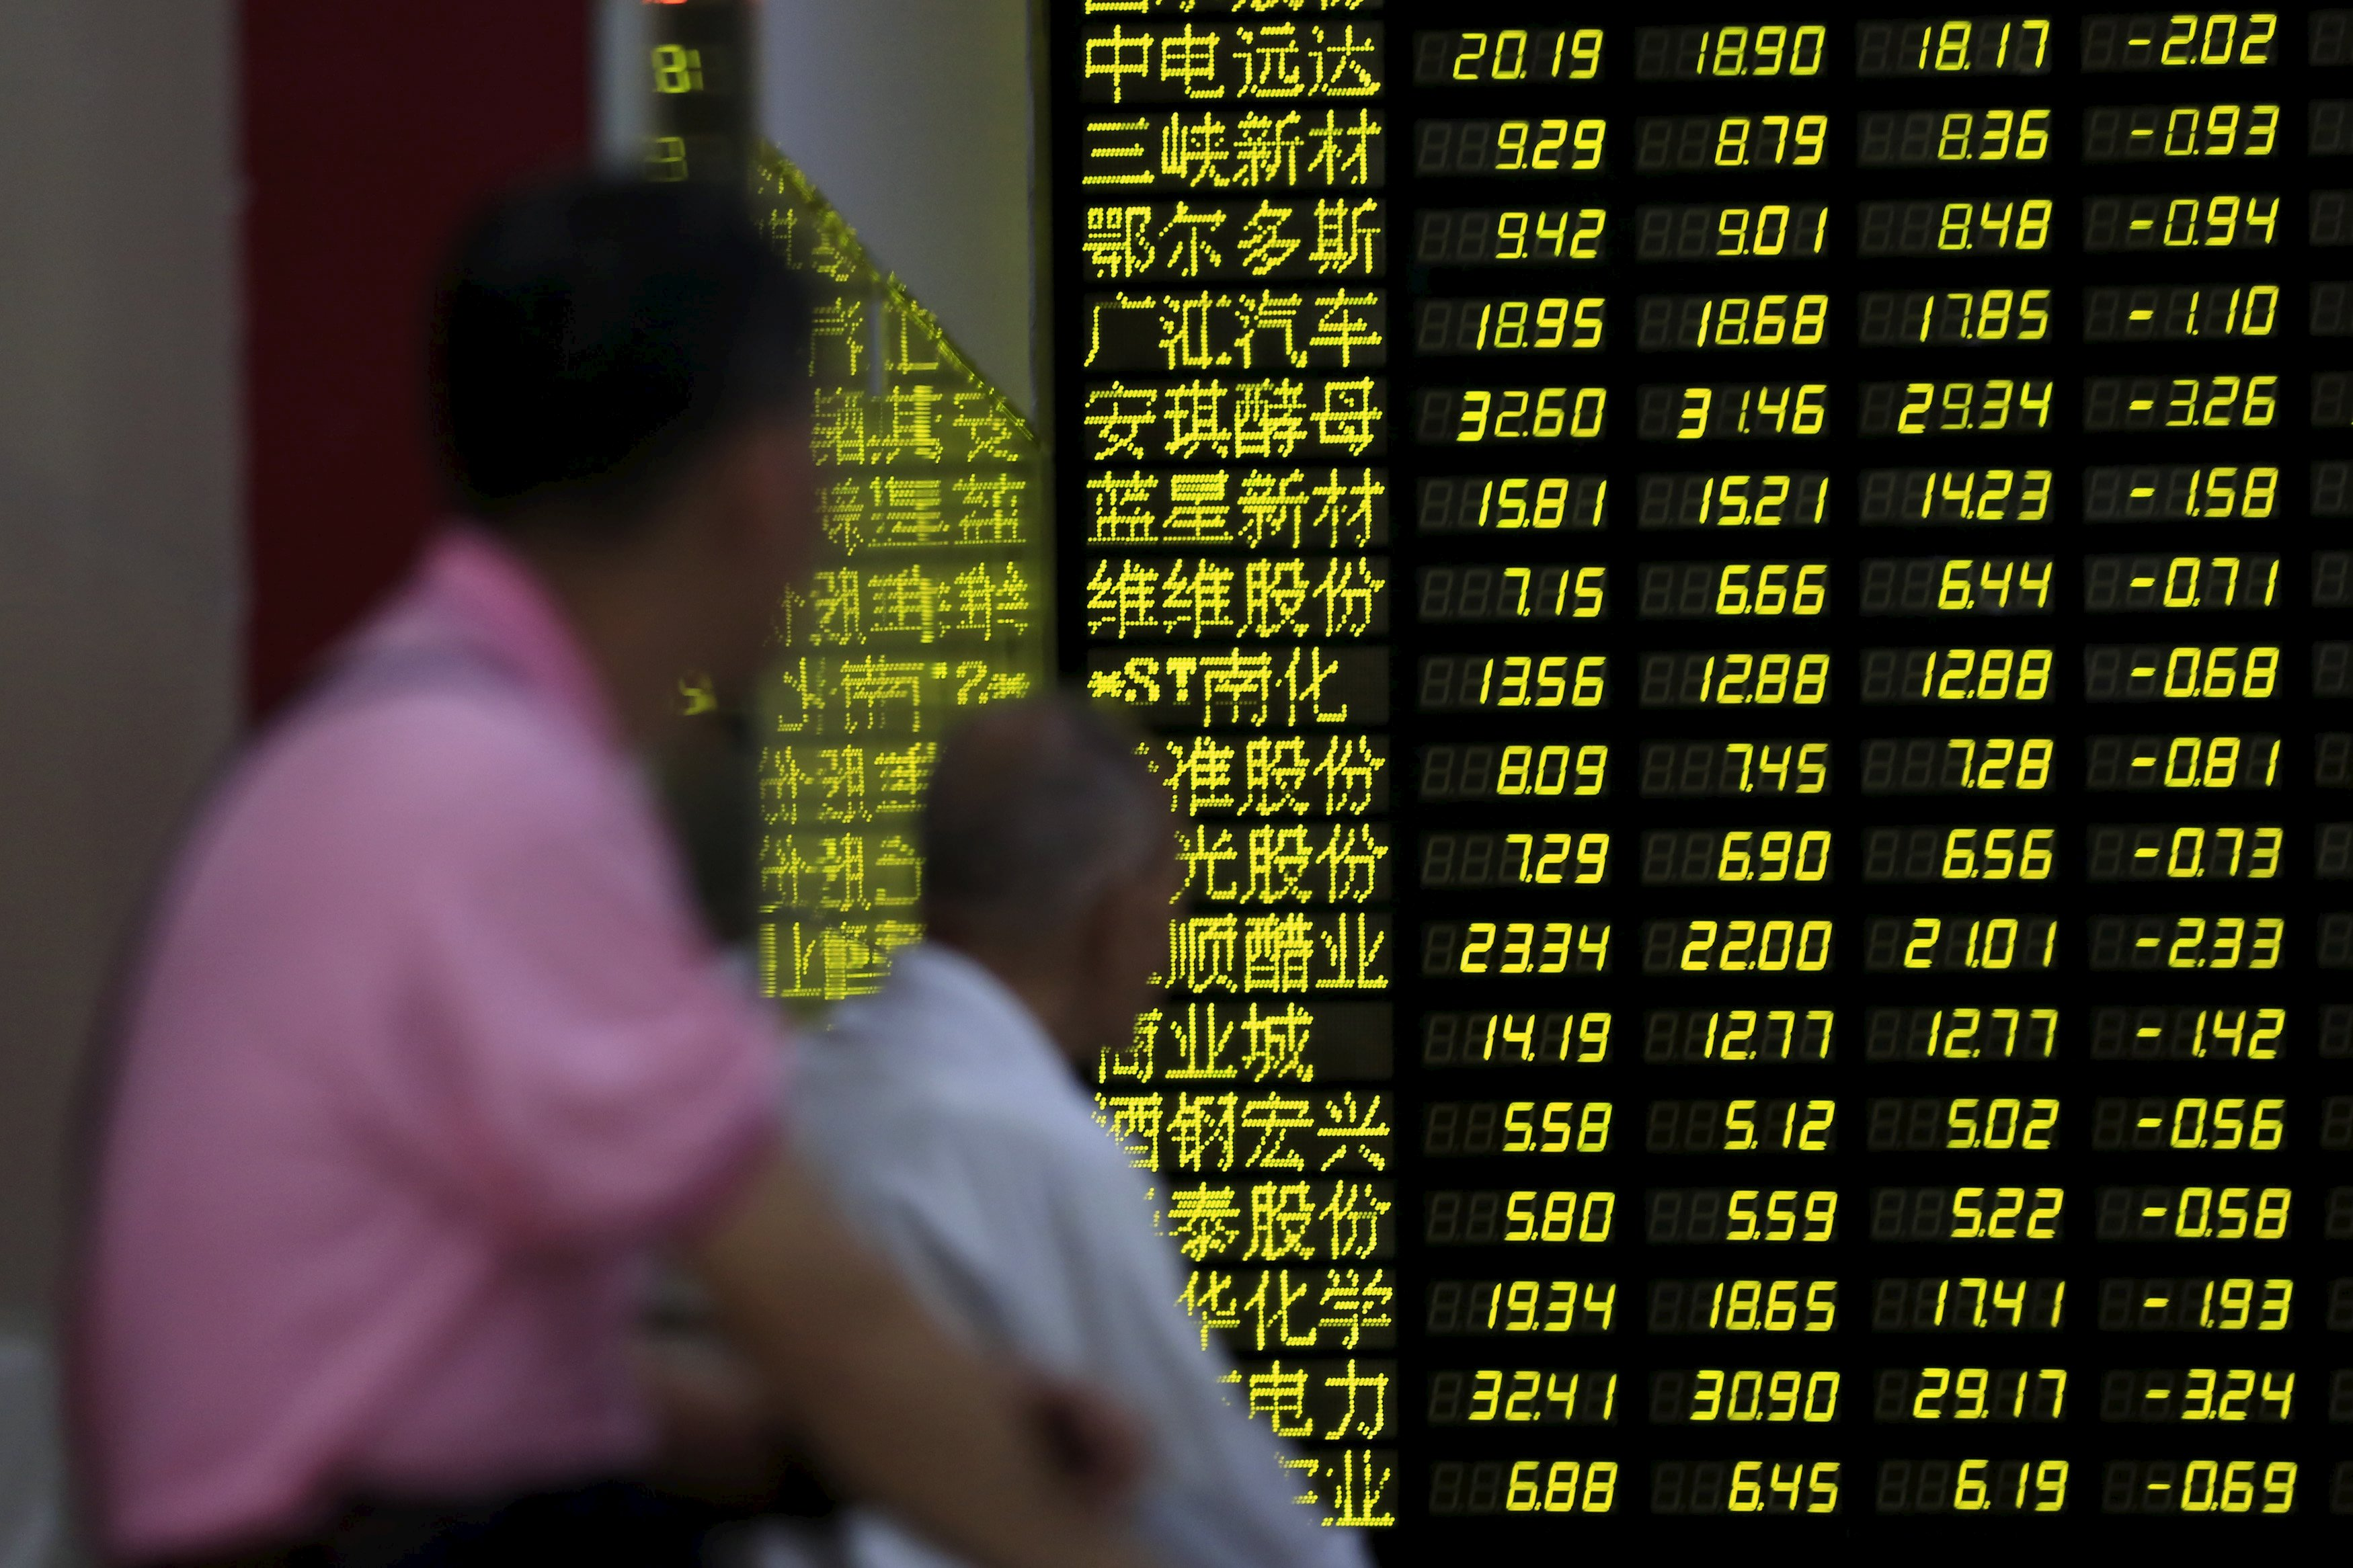 Investors look an electronic board showing stock information at a brokerage house in Shanghai, China, on August 24, 2015. Chinese stocks dived more than 8 percent on Monday morning, with the Shanghai index giving up all its gains for the year on investor disappointment that Beijing held back expected policy support at the weekend after markets shed 11 percent last week. Photo: Reuters